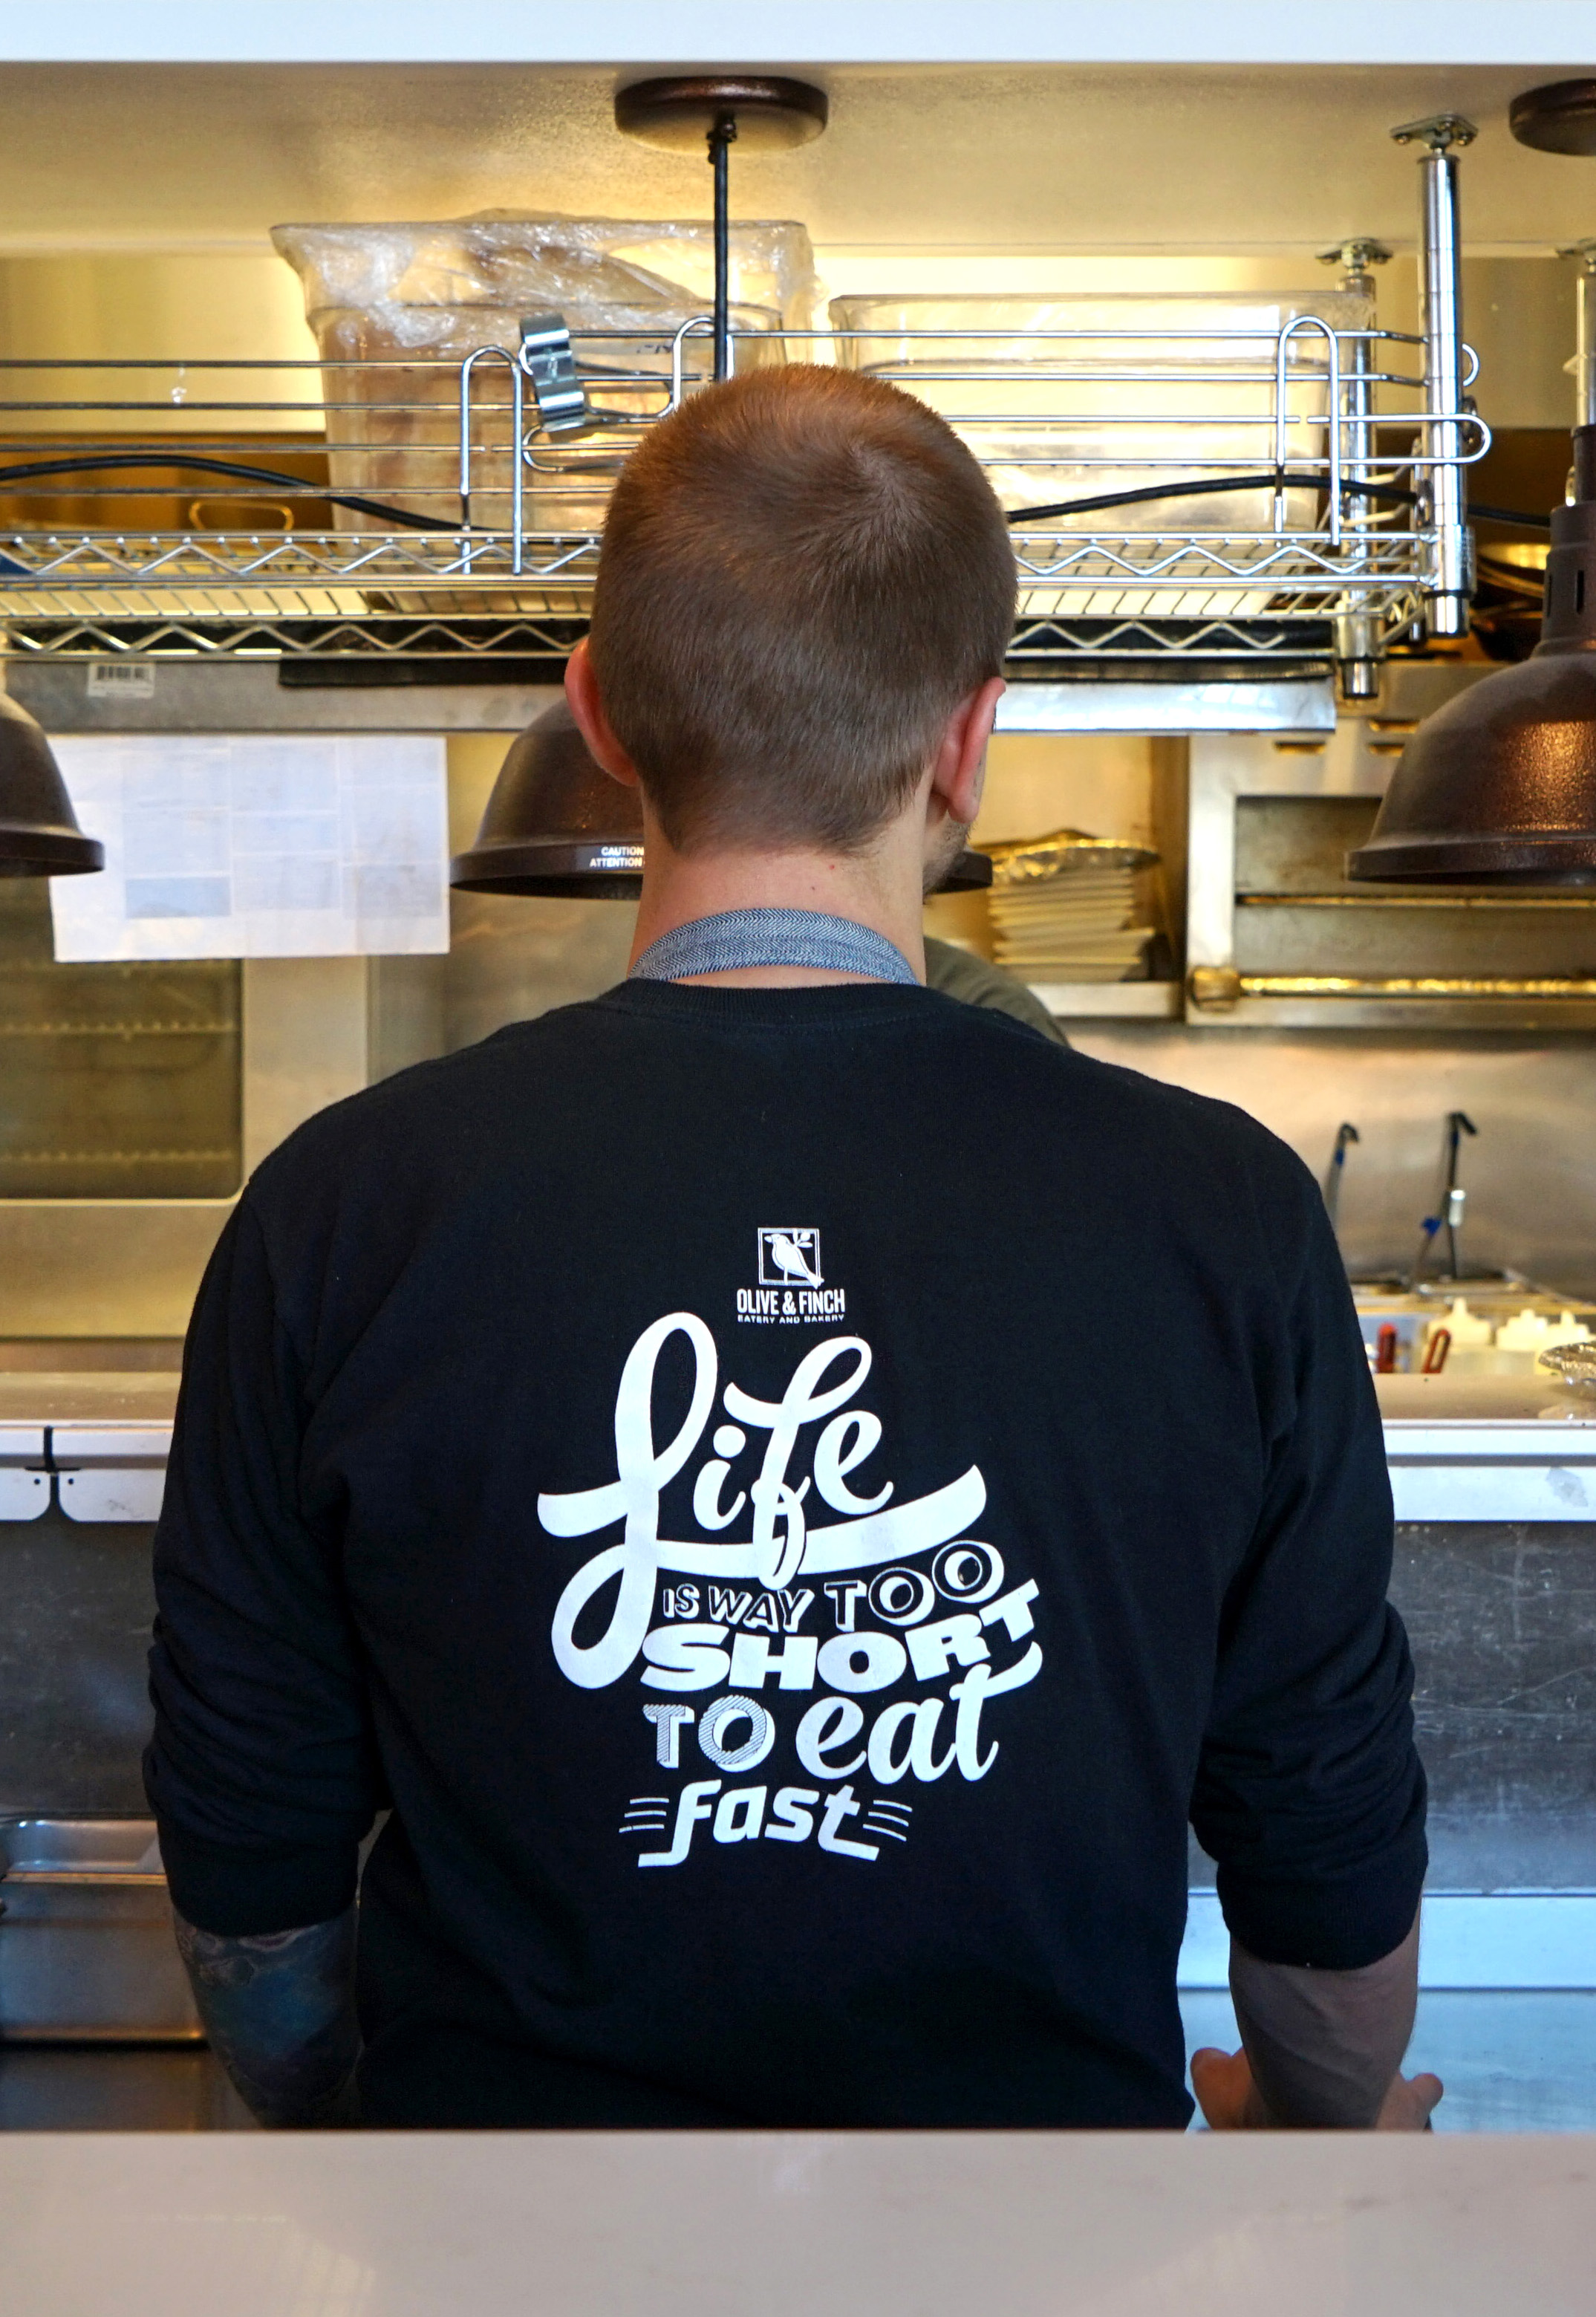 Both t-shirt designs were printed and are currently worn by the staff. The designs were printed on the back because all employees are required to wear aprons.